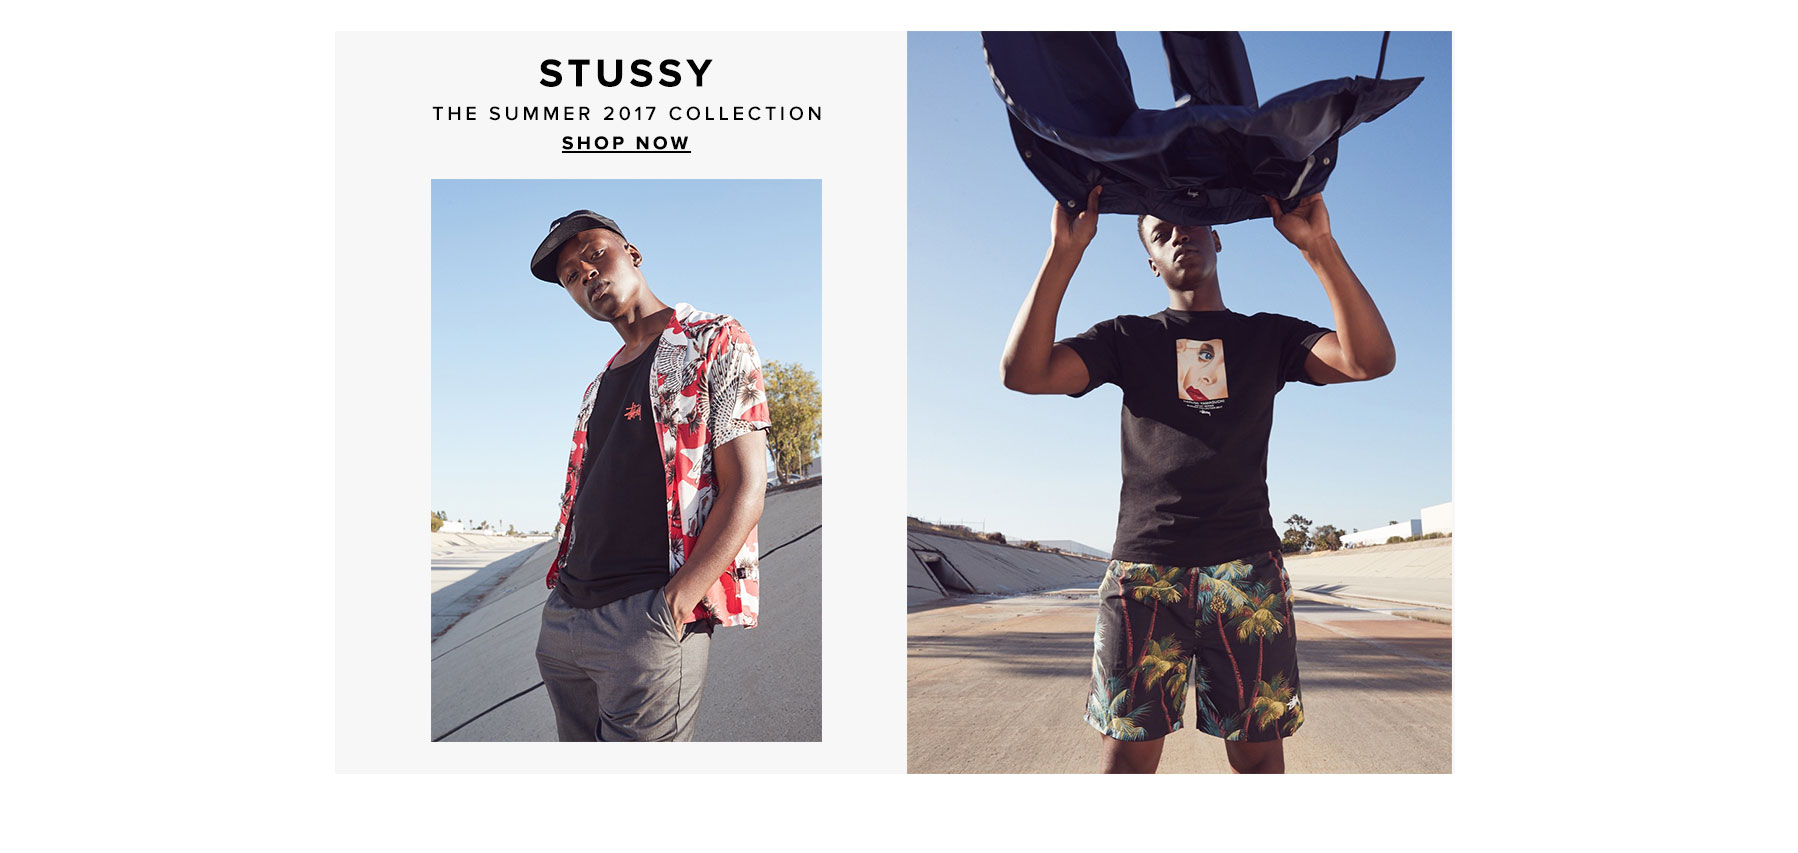 Stussy. Classic cuts and bold visuals highlight the summer 2017 collection. Shop now.